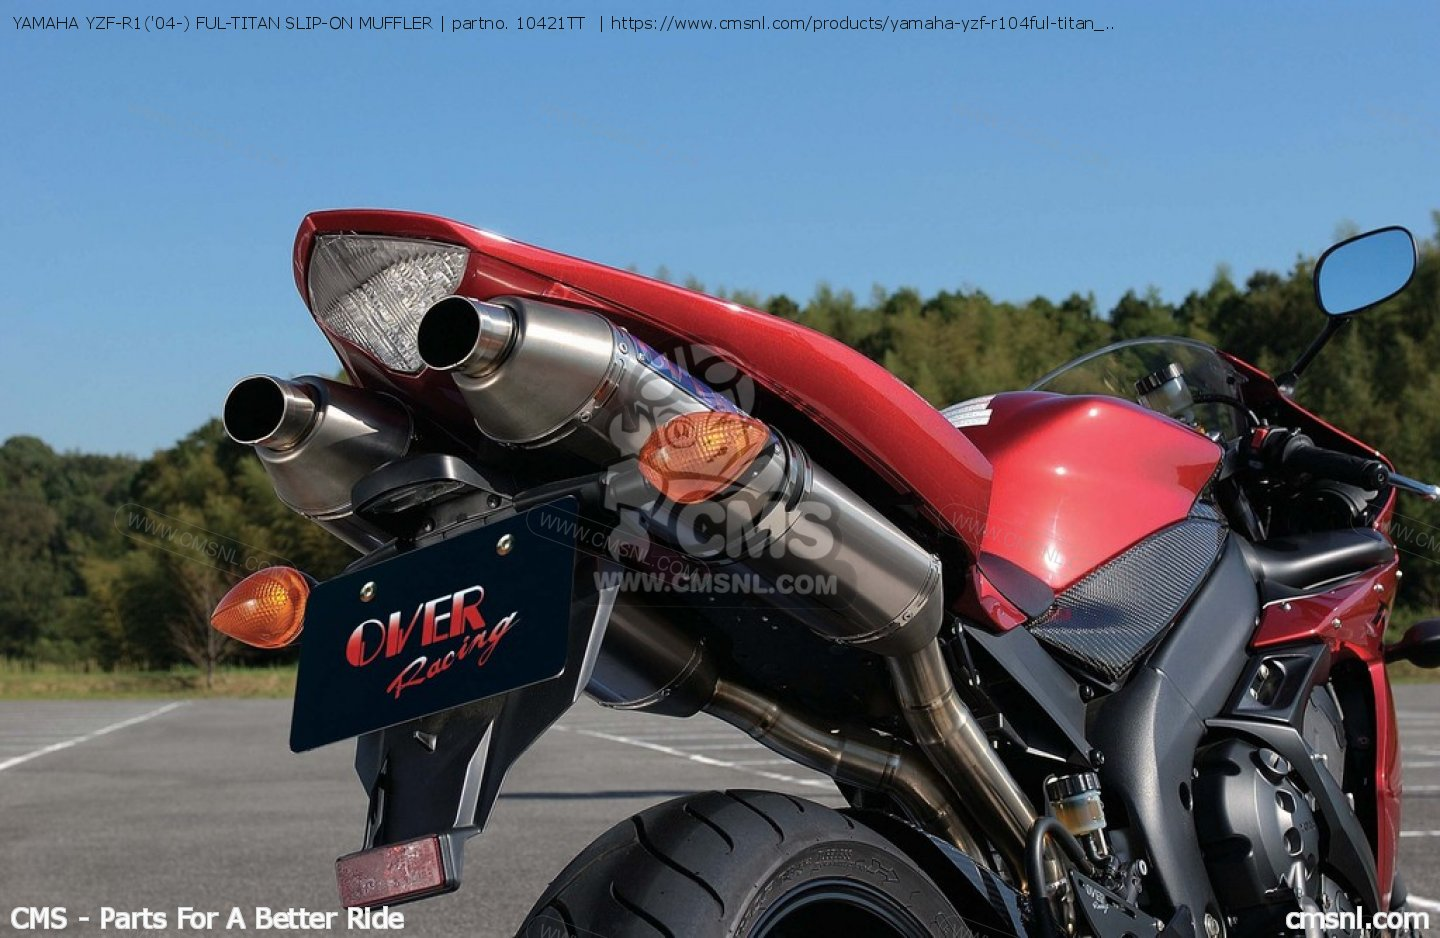 EXHAUST SYSTEMS YAMAHA YZF-R1('04-) FUL-TITAN SLIP-ON MUFFLER 10421TT, fits Over Racing